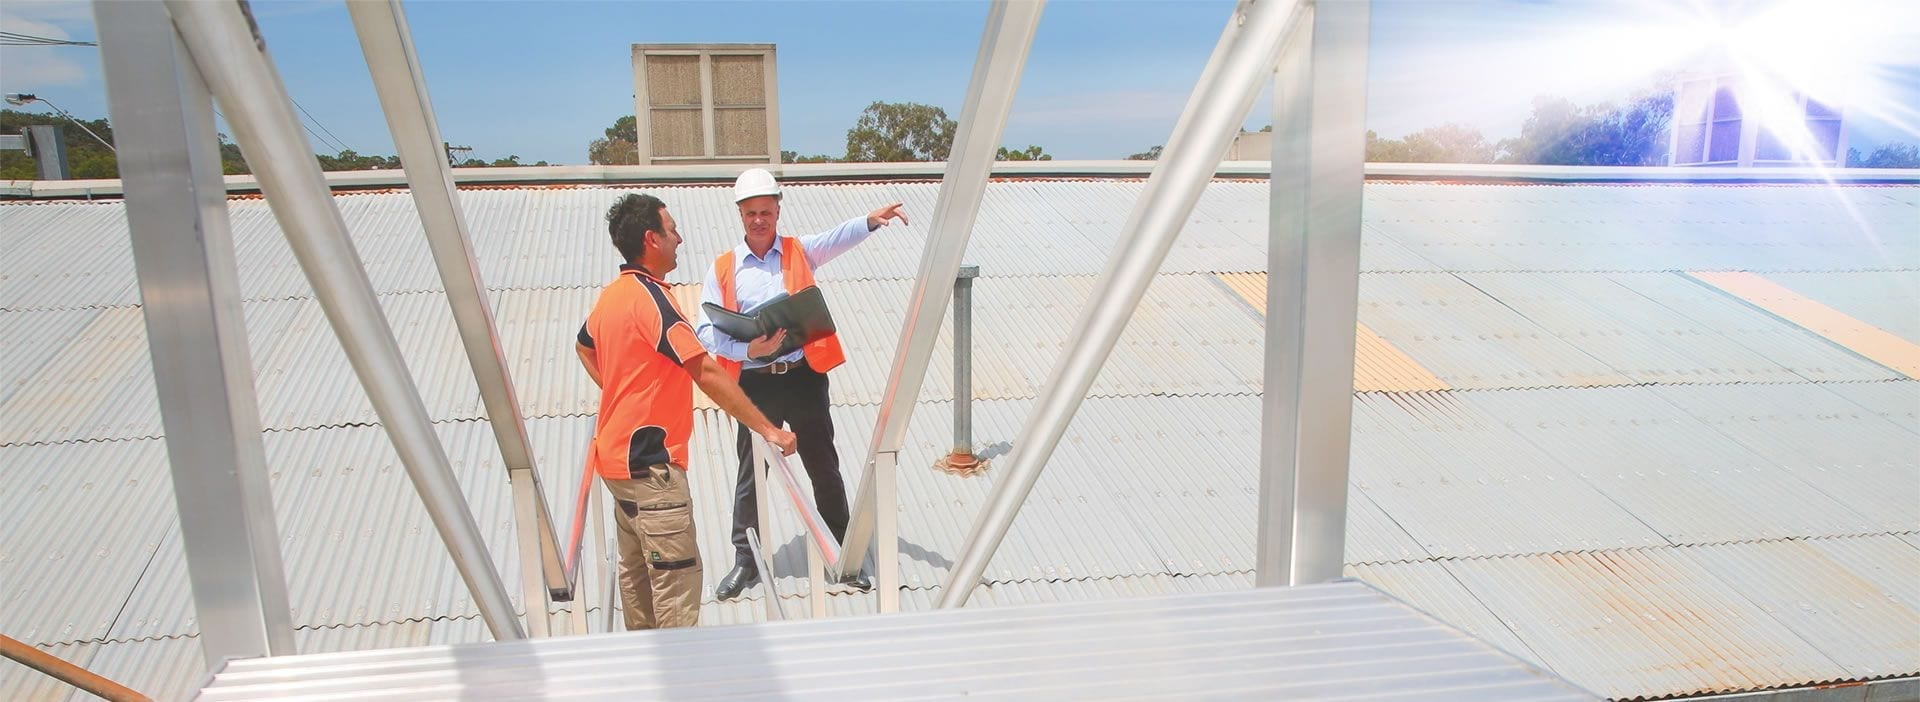 AnchorSafe Australia employees on rooftop